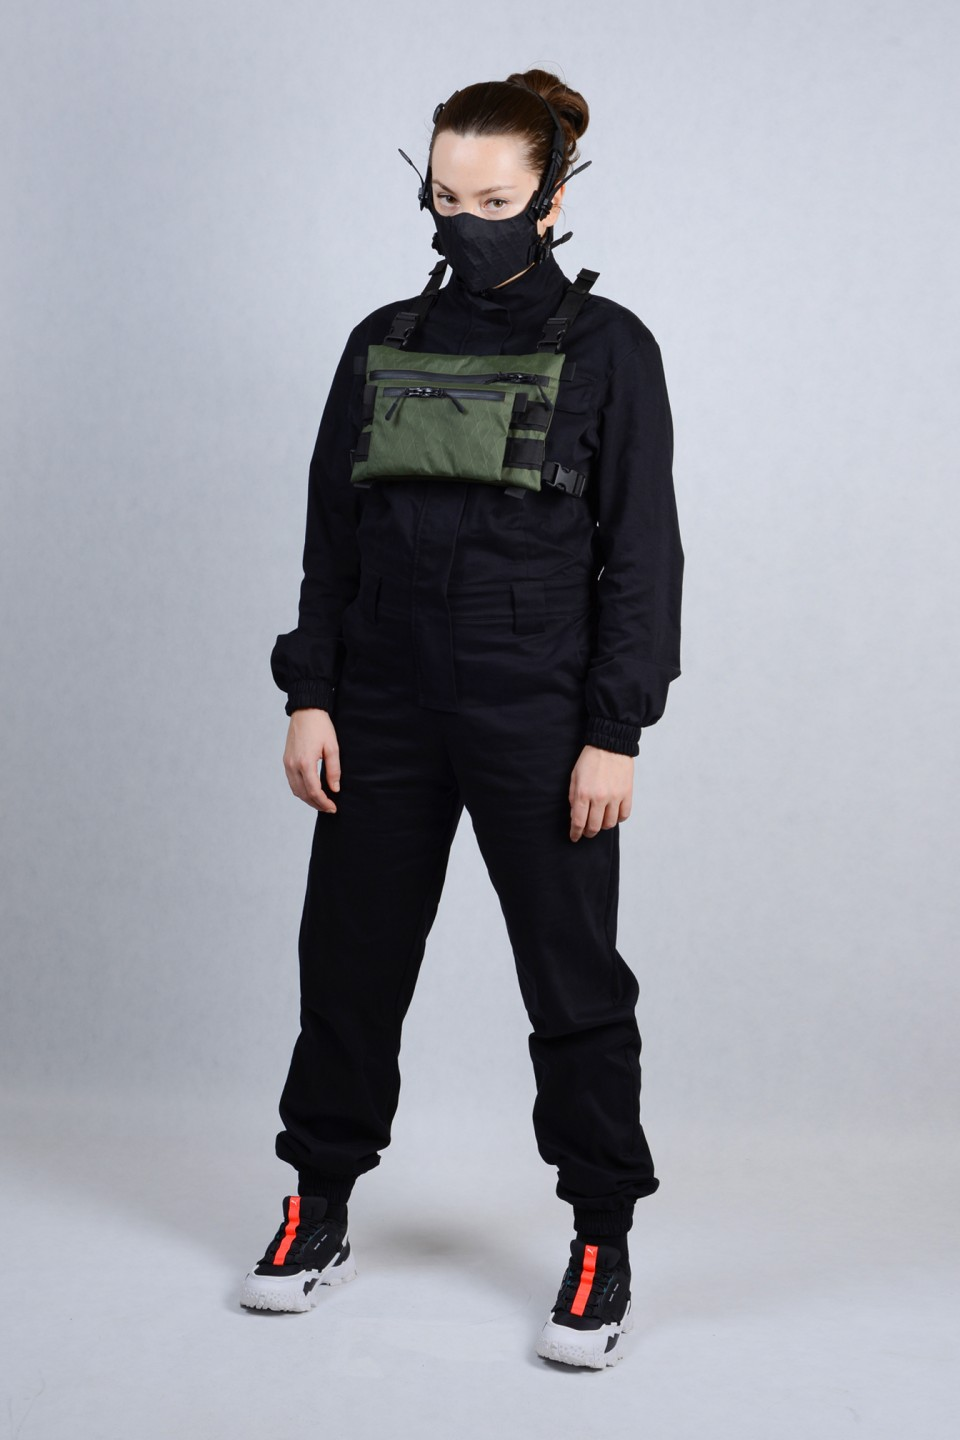 VX21 OLIVE X-PAC CHEST RIG